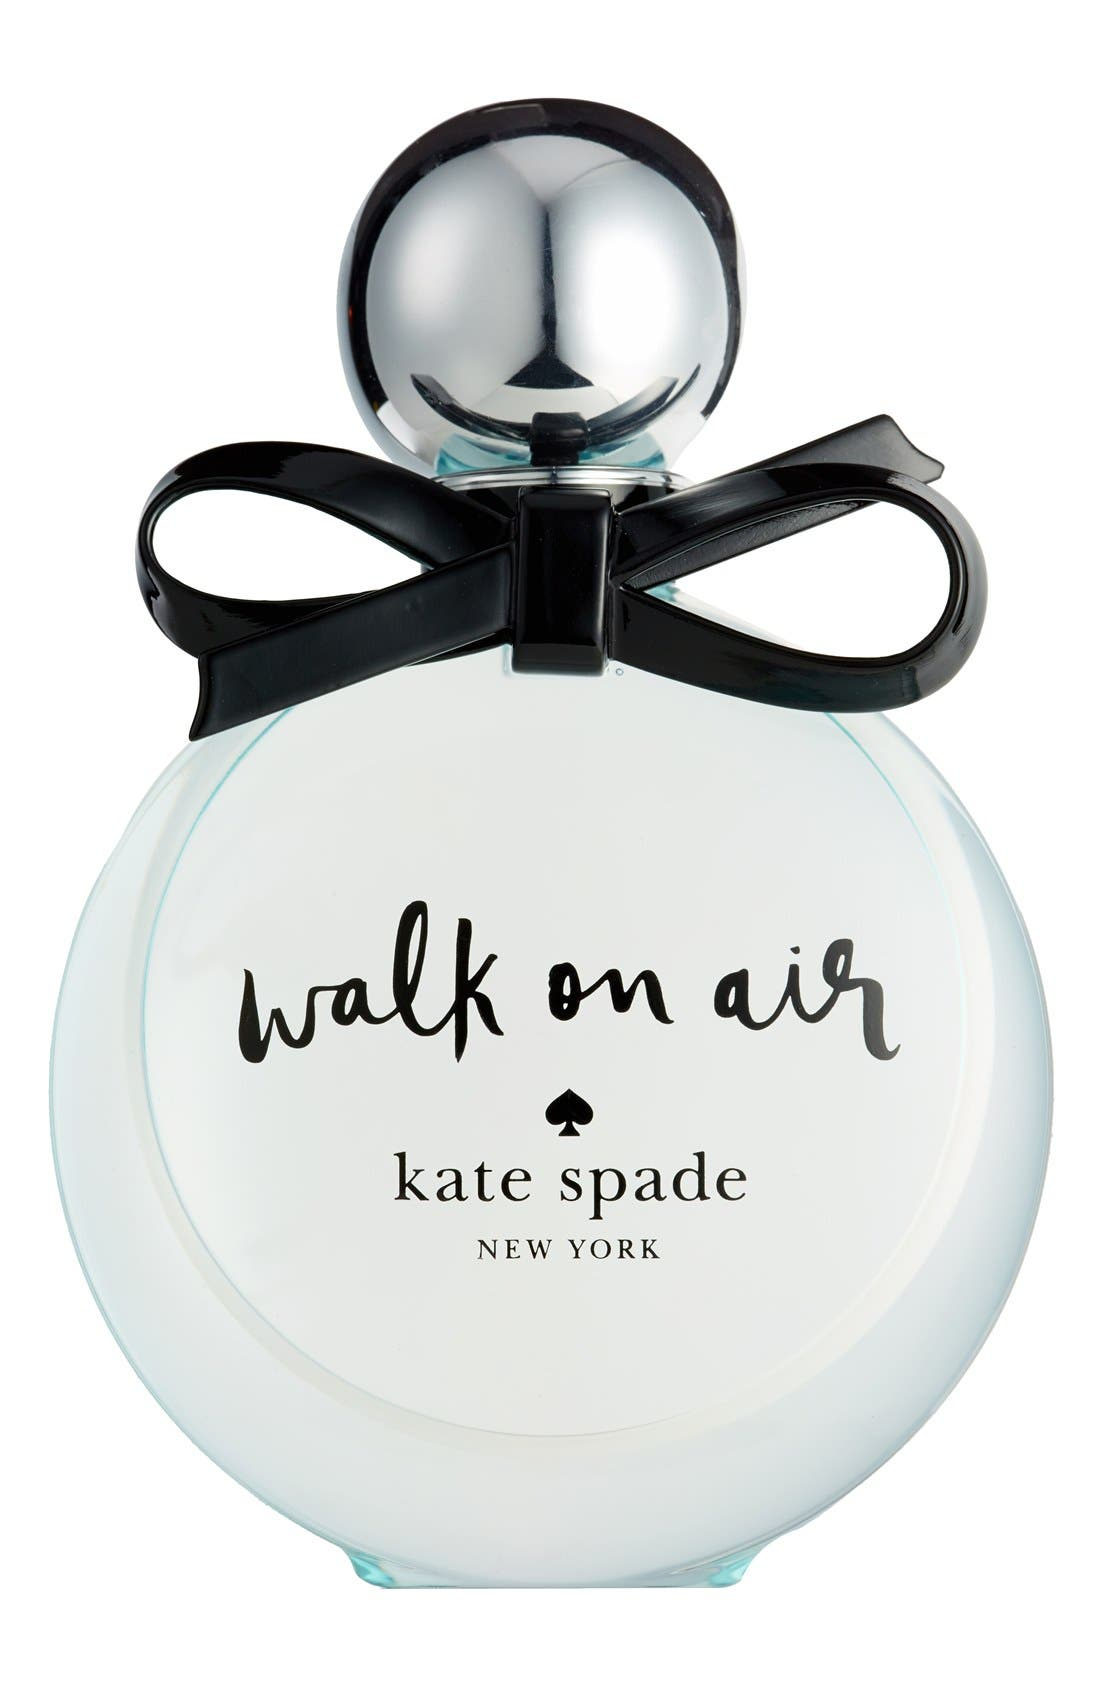 kate spade new york 'walk on air' eau de parfum